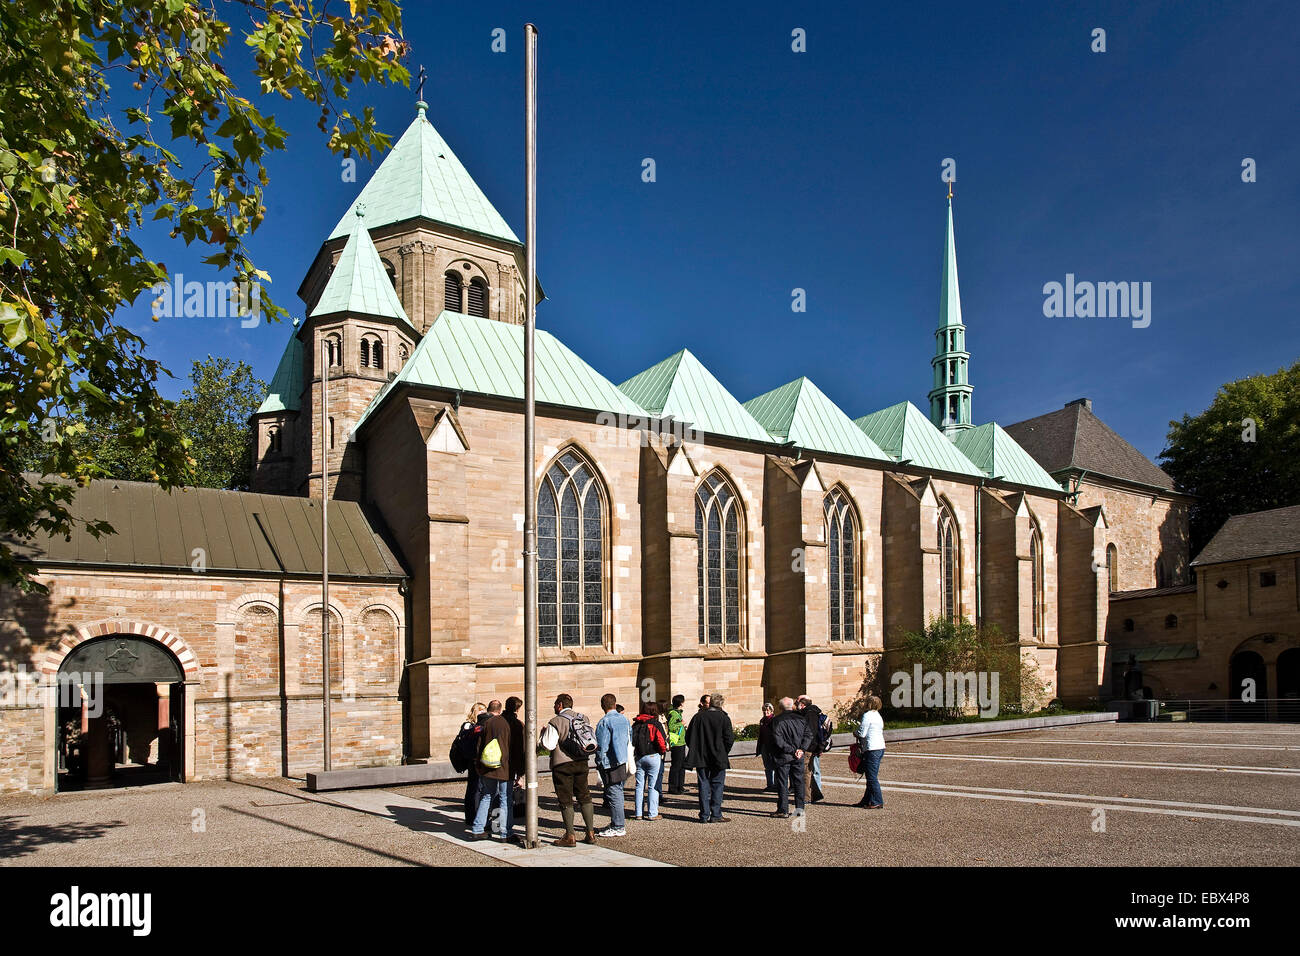 guided tour in front of Essen cathedral in Essen downtown, Germany, North Rhine-Westphalia, Ruhr Area, Essen - Stock Image